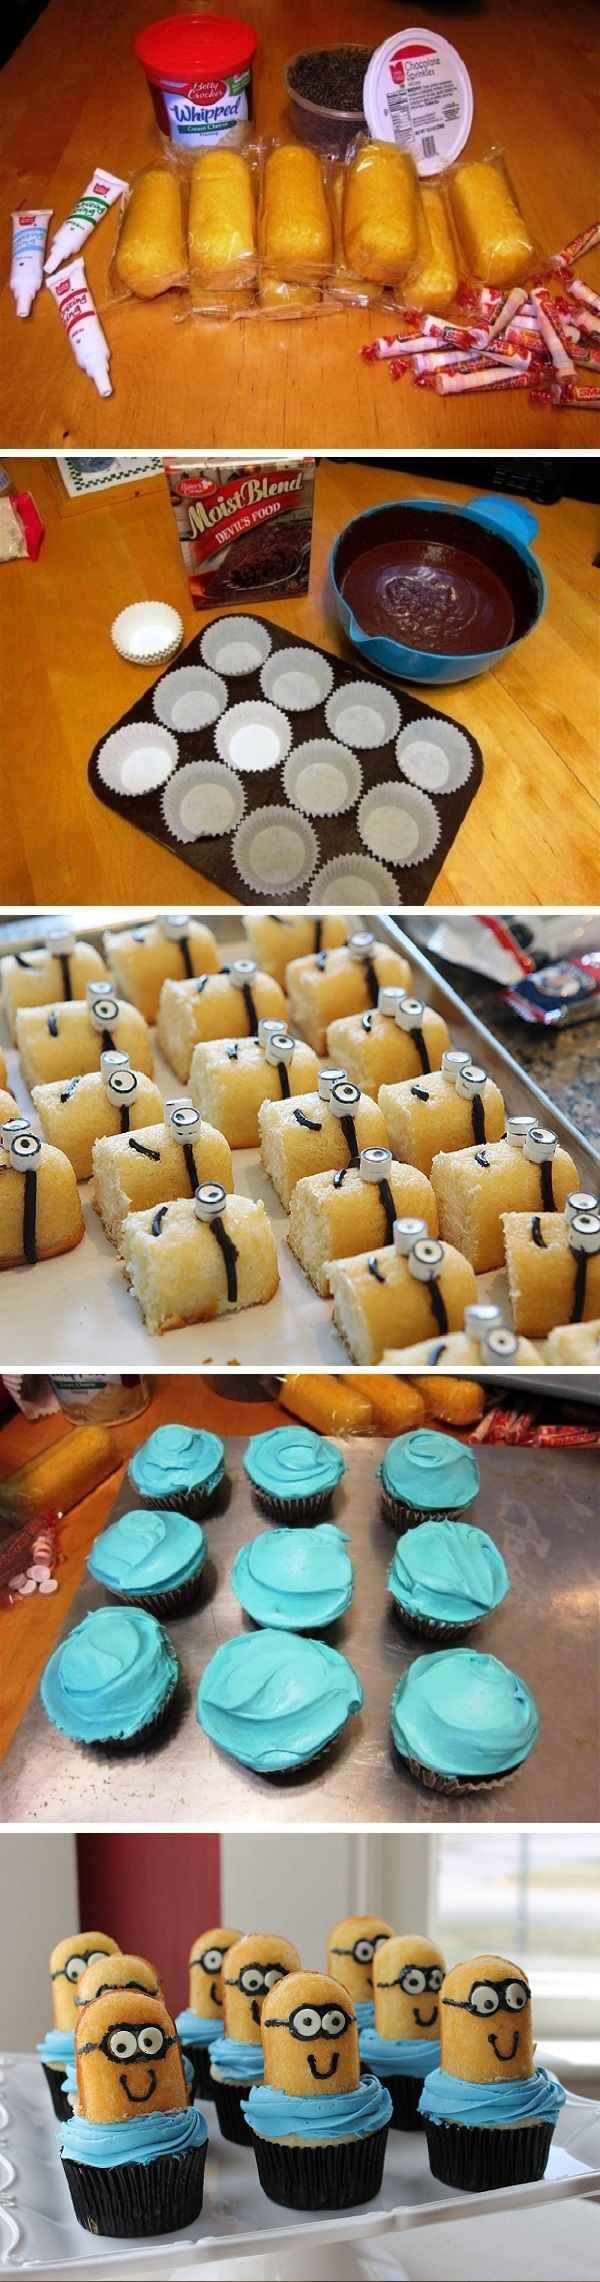 How to Make Despicable Me Minion Cupcakes Twinkie Edition. Calie's bday!!!!